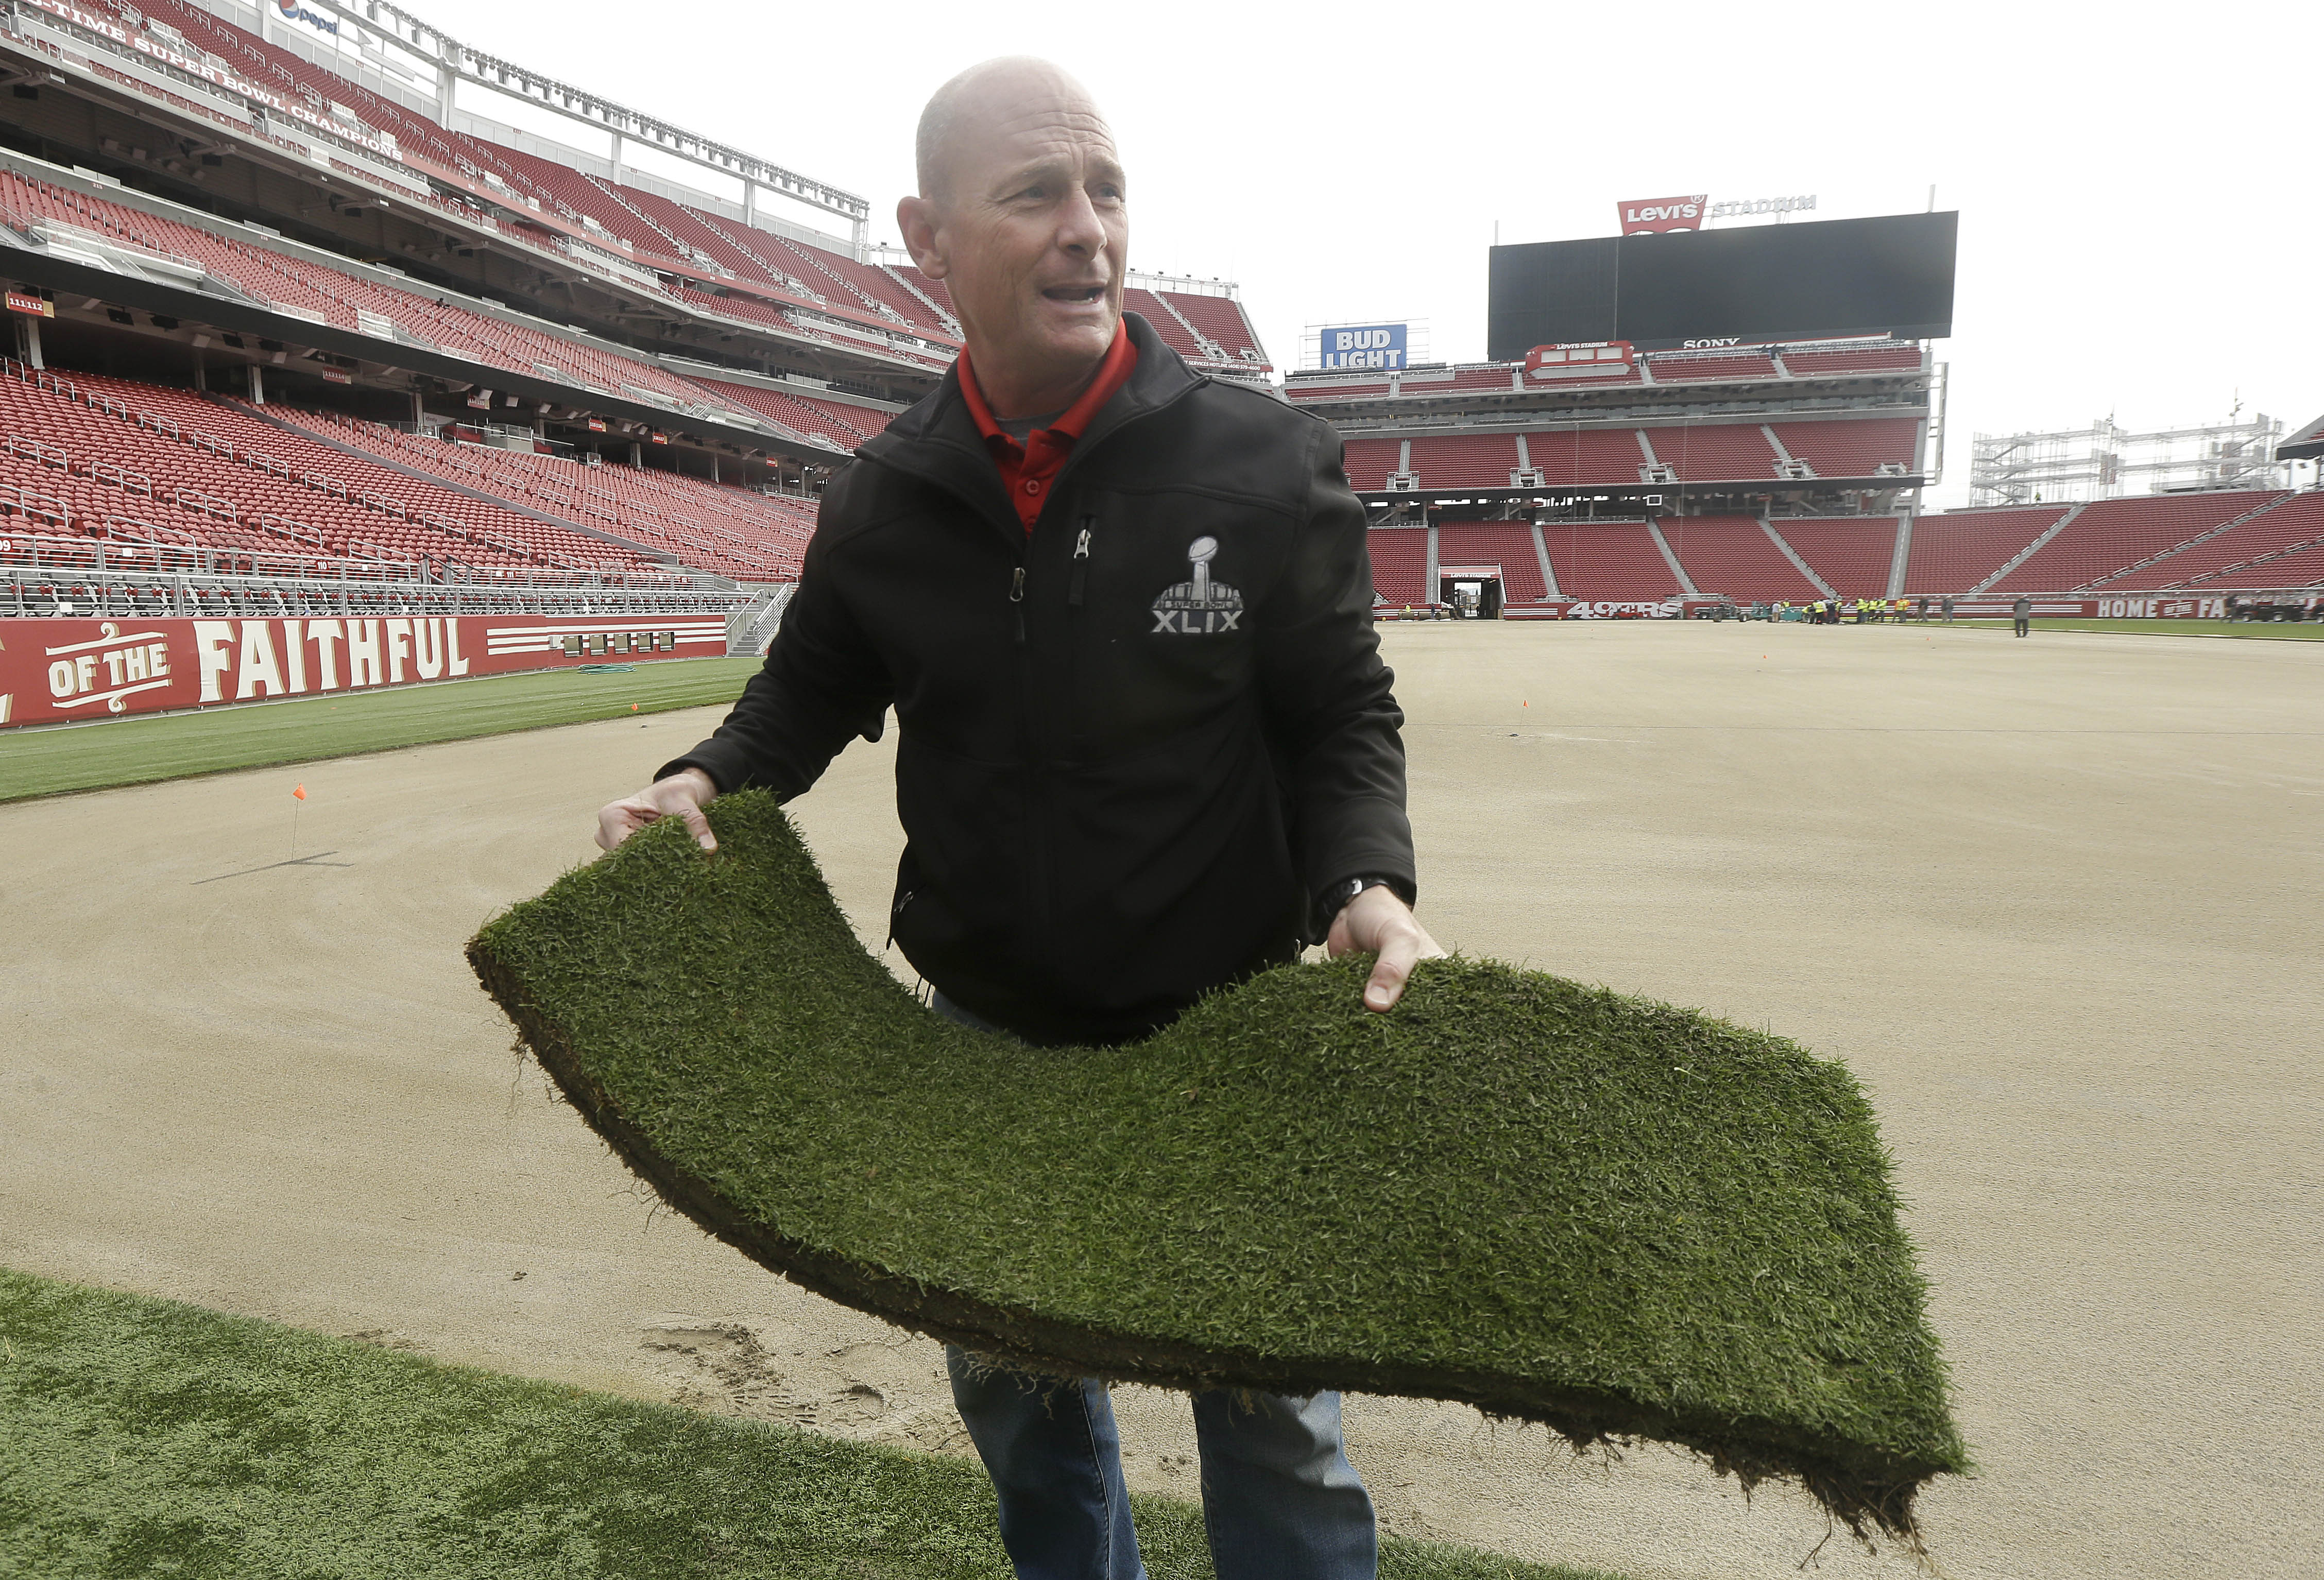 In this photo from Monday, Jan. 11, 2016, NFL field director Ed Mangan holds up a piece of sod as he speaks to reporters about the field preparation for Super Bowl 50 at Levi's Stadium in Santa Clara, Calif. Mangan, working his 27th Super Bowl, oversaw th